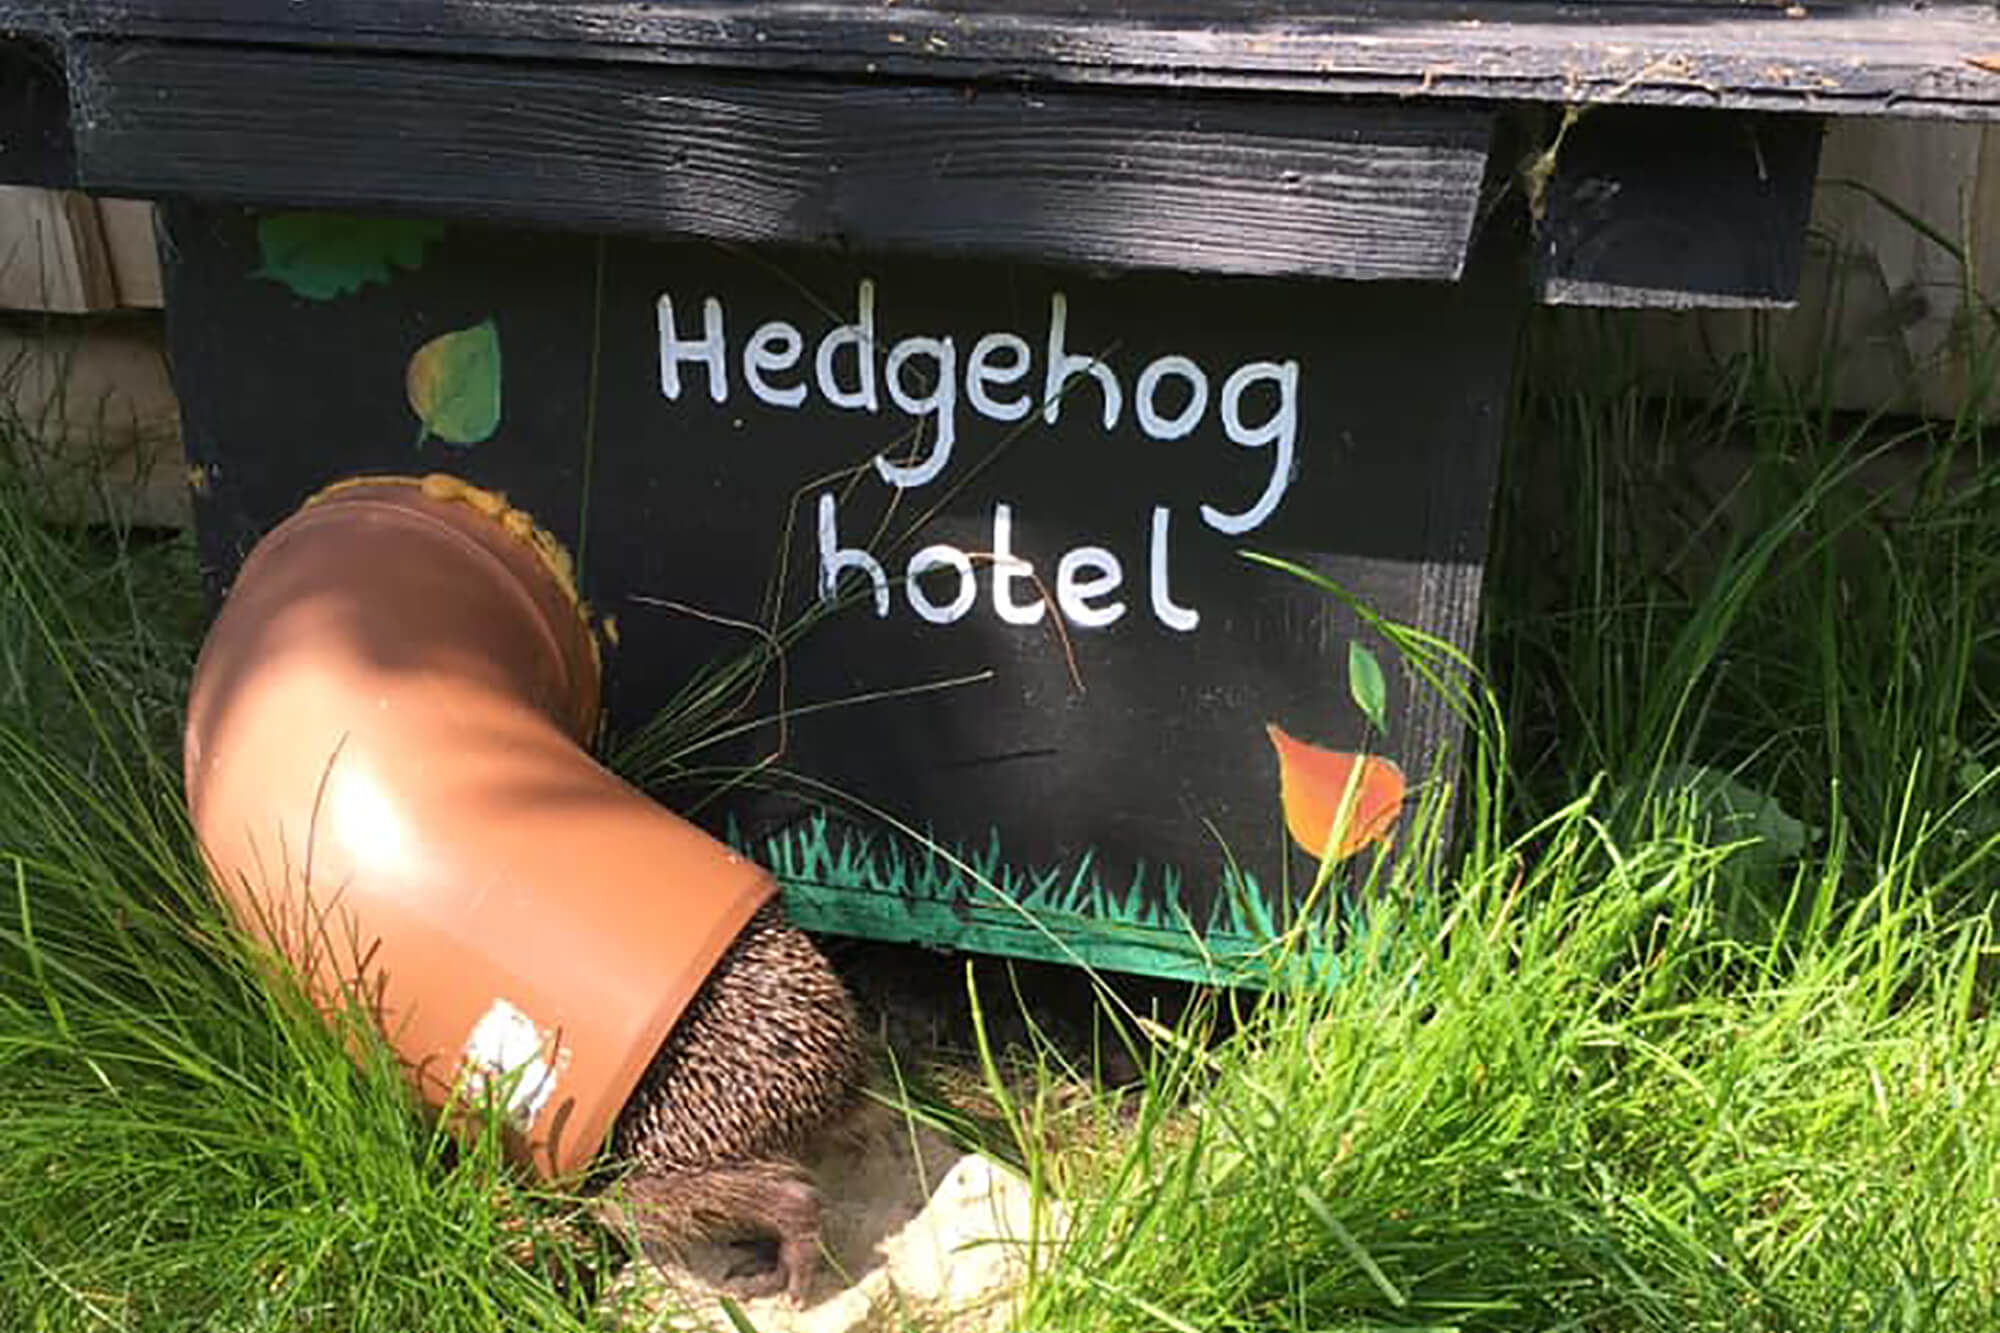 A DIY shelter for hedgehogs